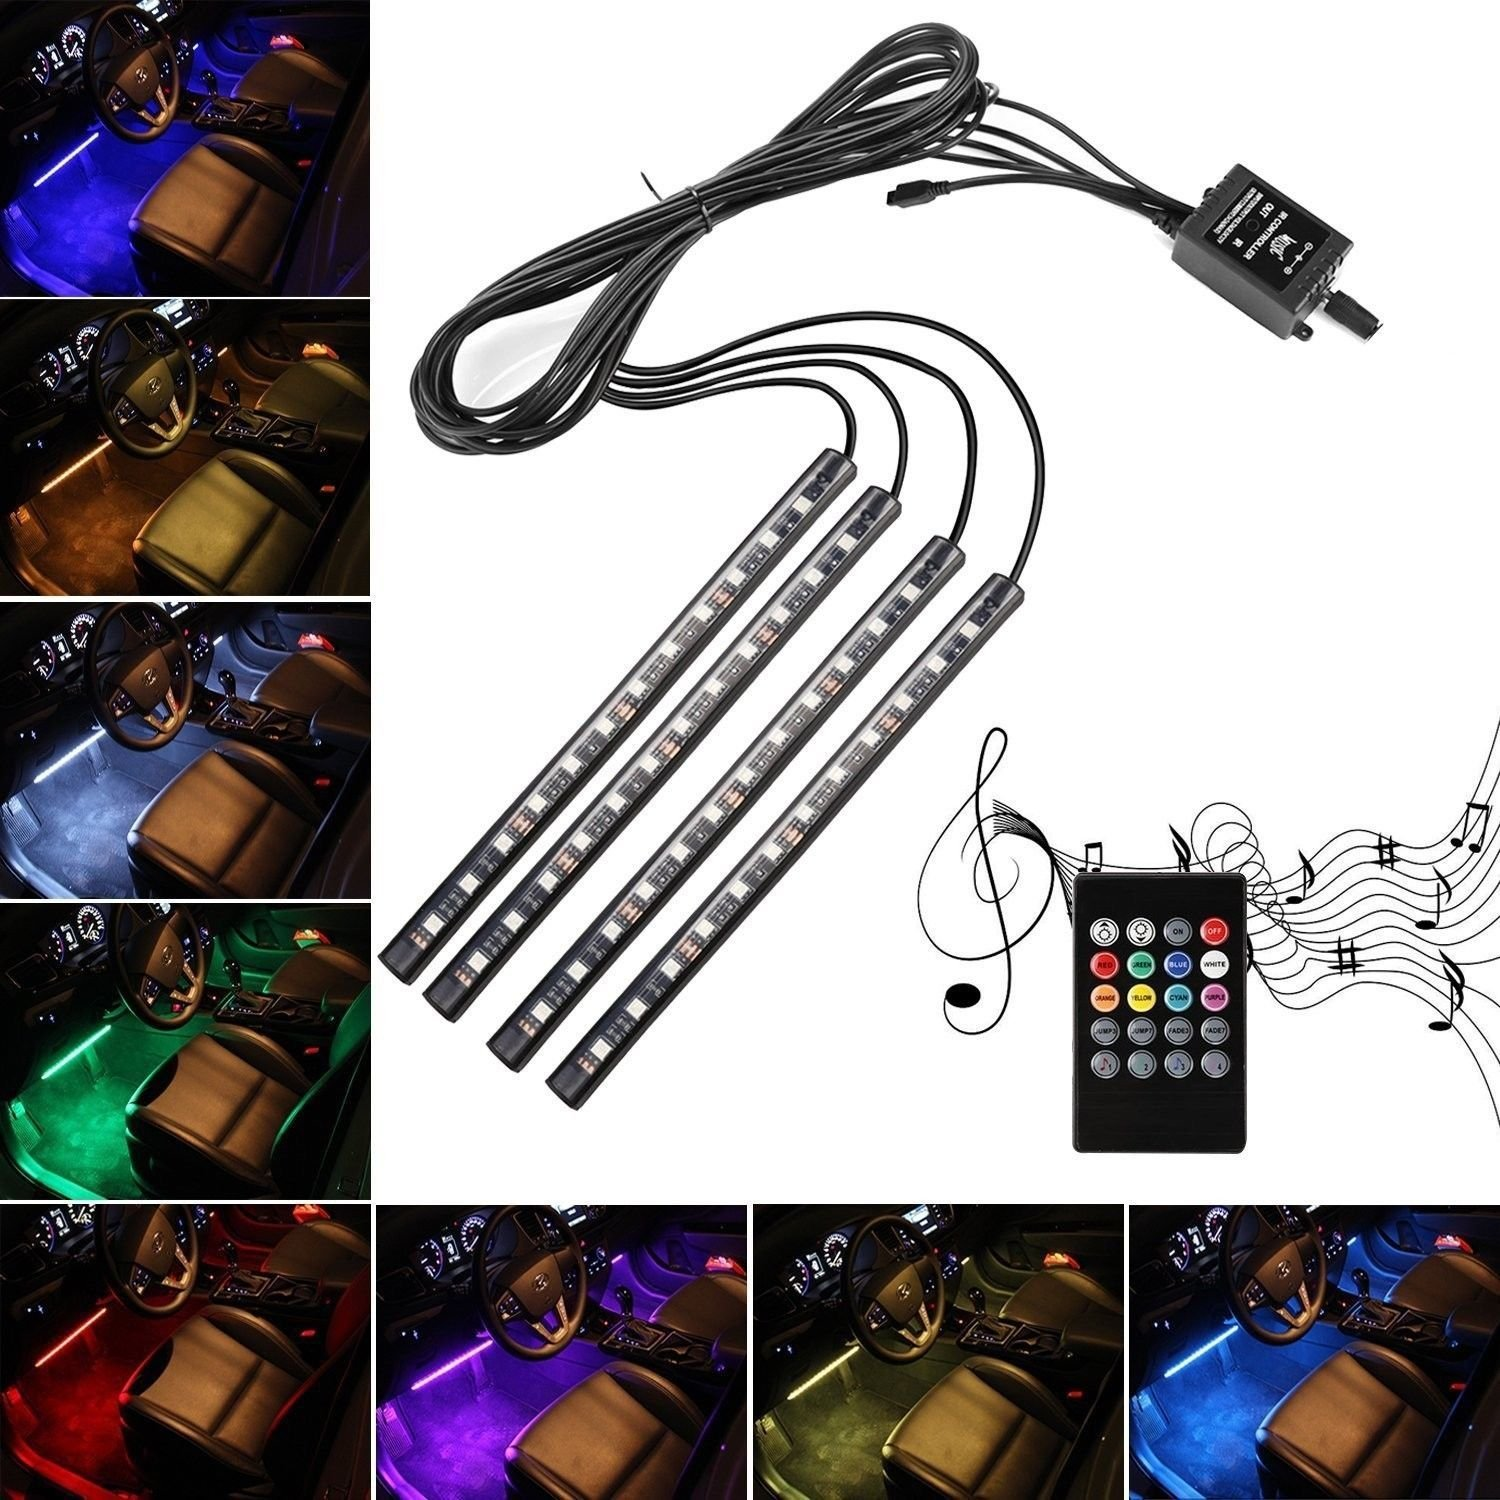 Car LED Strip Lights,4pcs 48 LED Multicolor Music Interior Strip Lights Under Dash Lighting Waterproof Kit With Sound Active Function And Wireless Remote Control,Car Charger Included,DC 12V